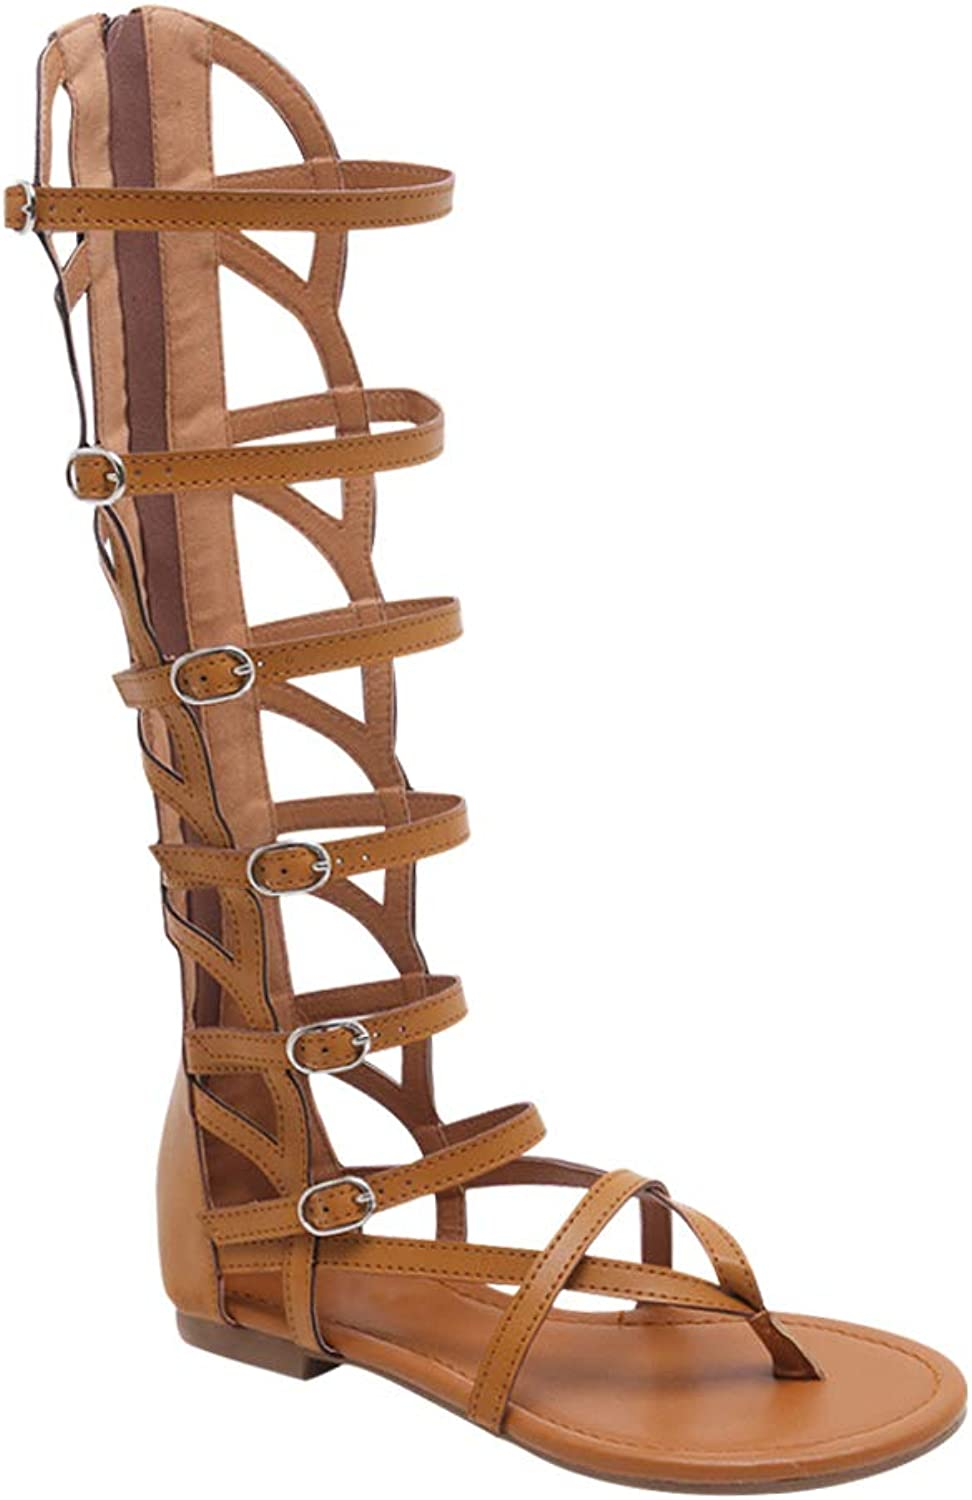 Uirend Gladiator Sandals Cut Out Boots Women - Ladies Knee High Ankle Strap shoes Open Toe Roman Sandals Casual Beach Summer